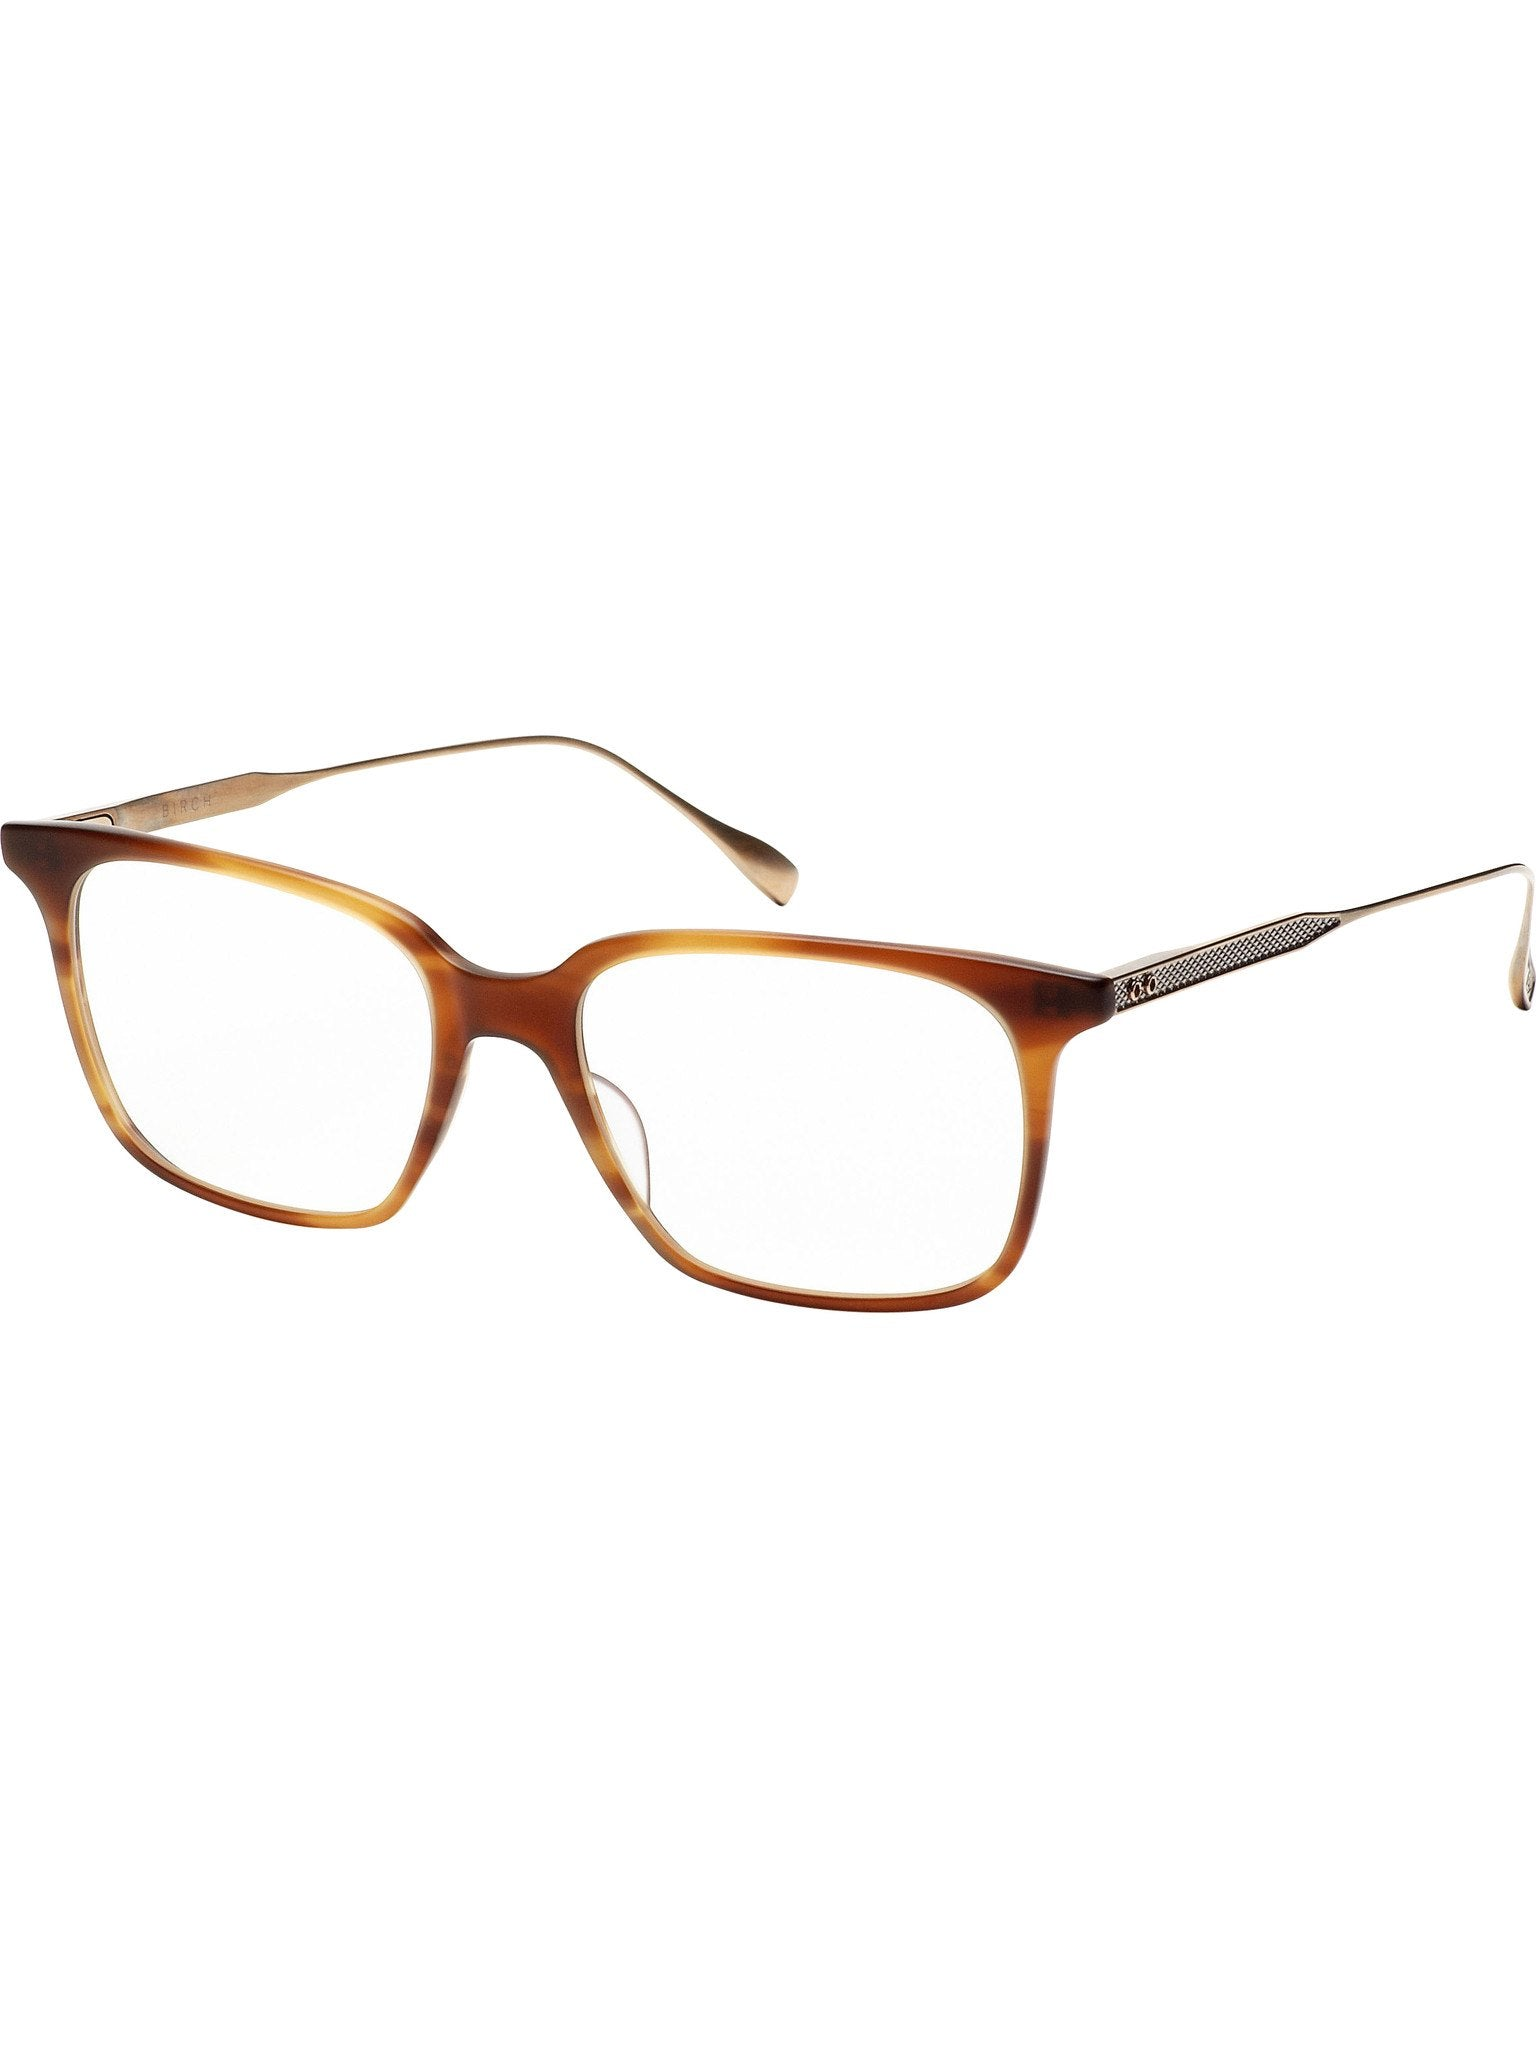 Optical Frame - Dita Birch DRX-2074-B Glasses